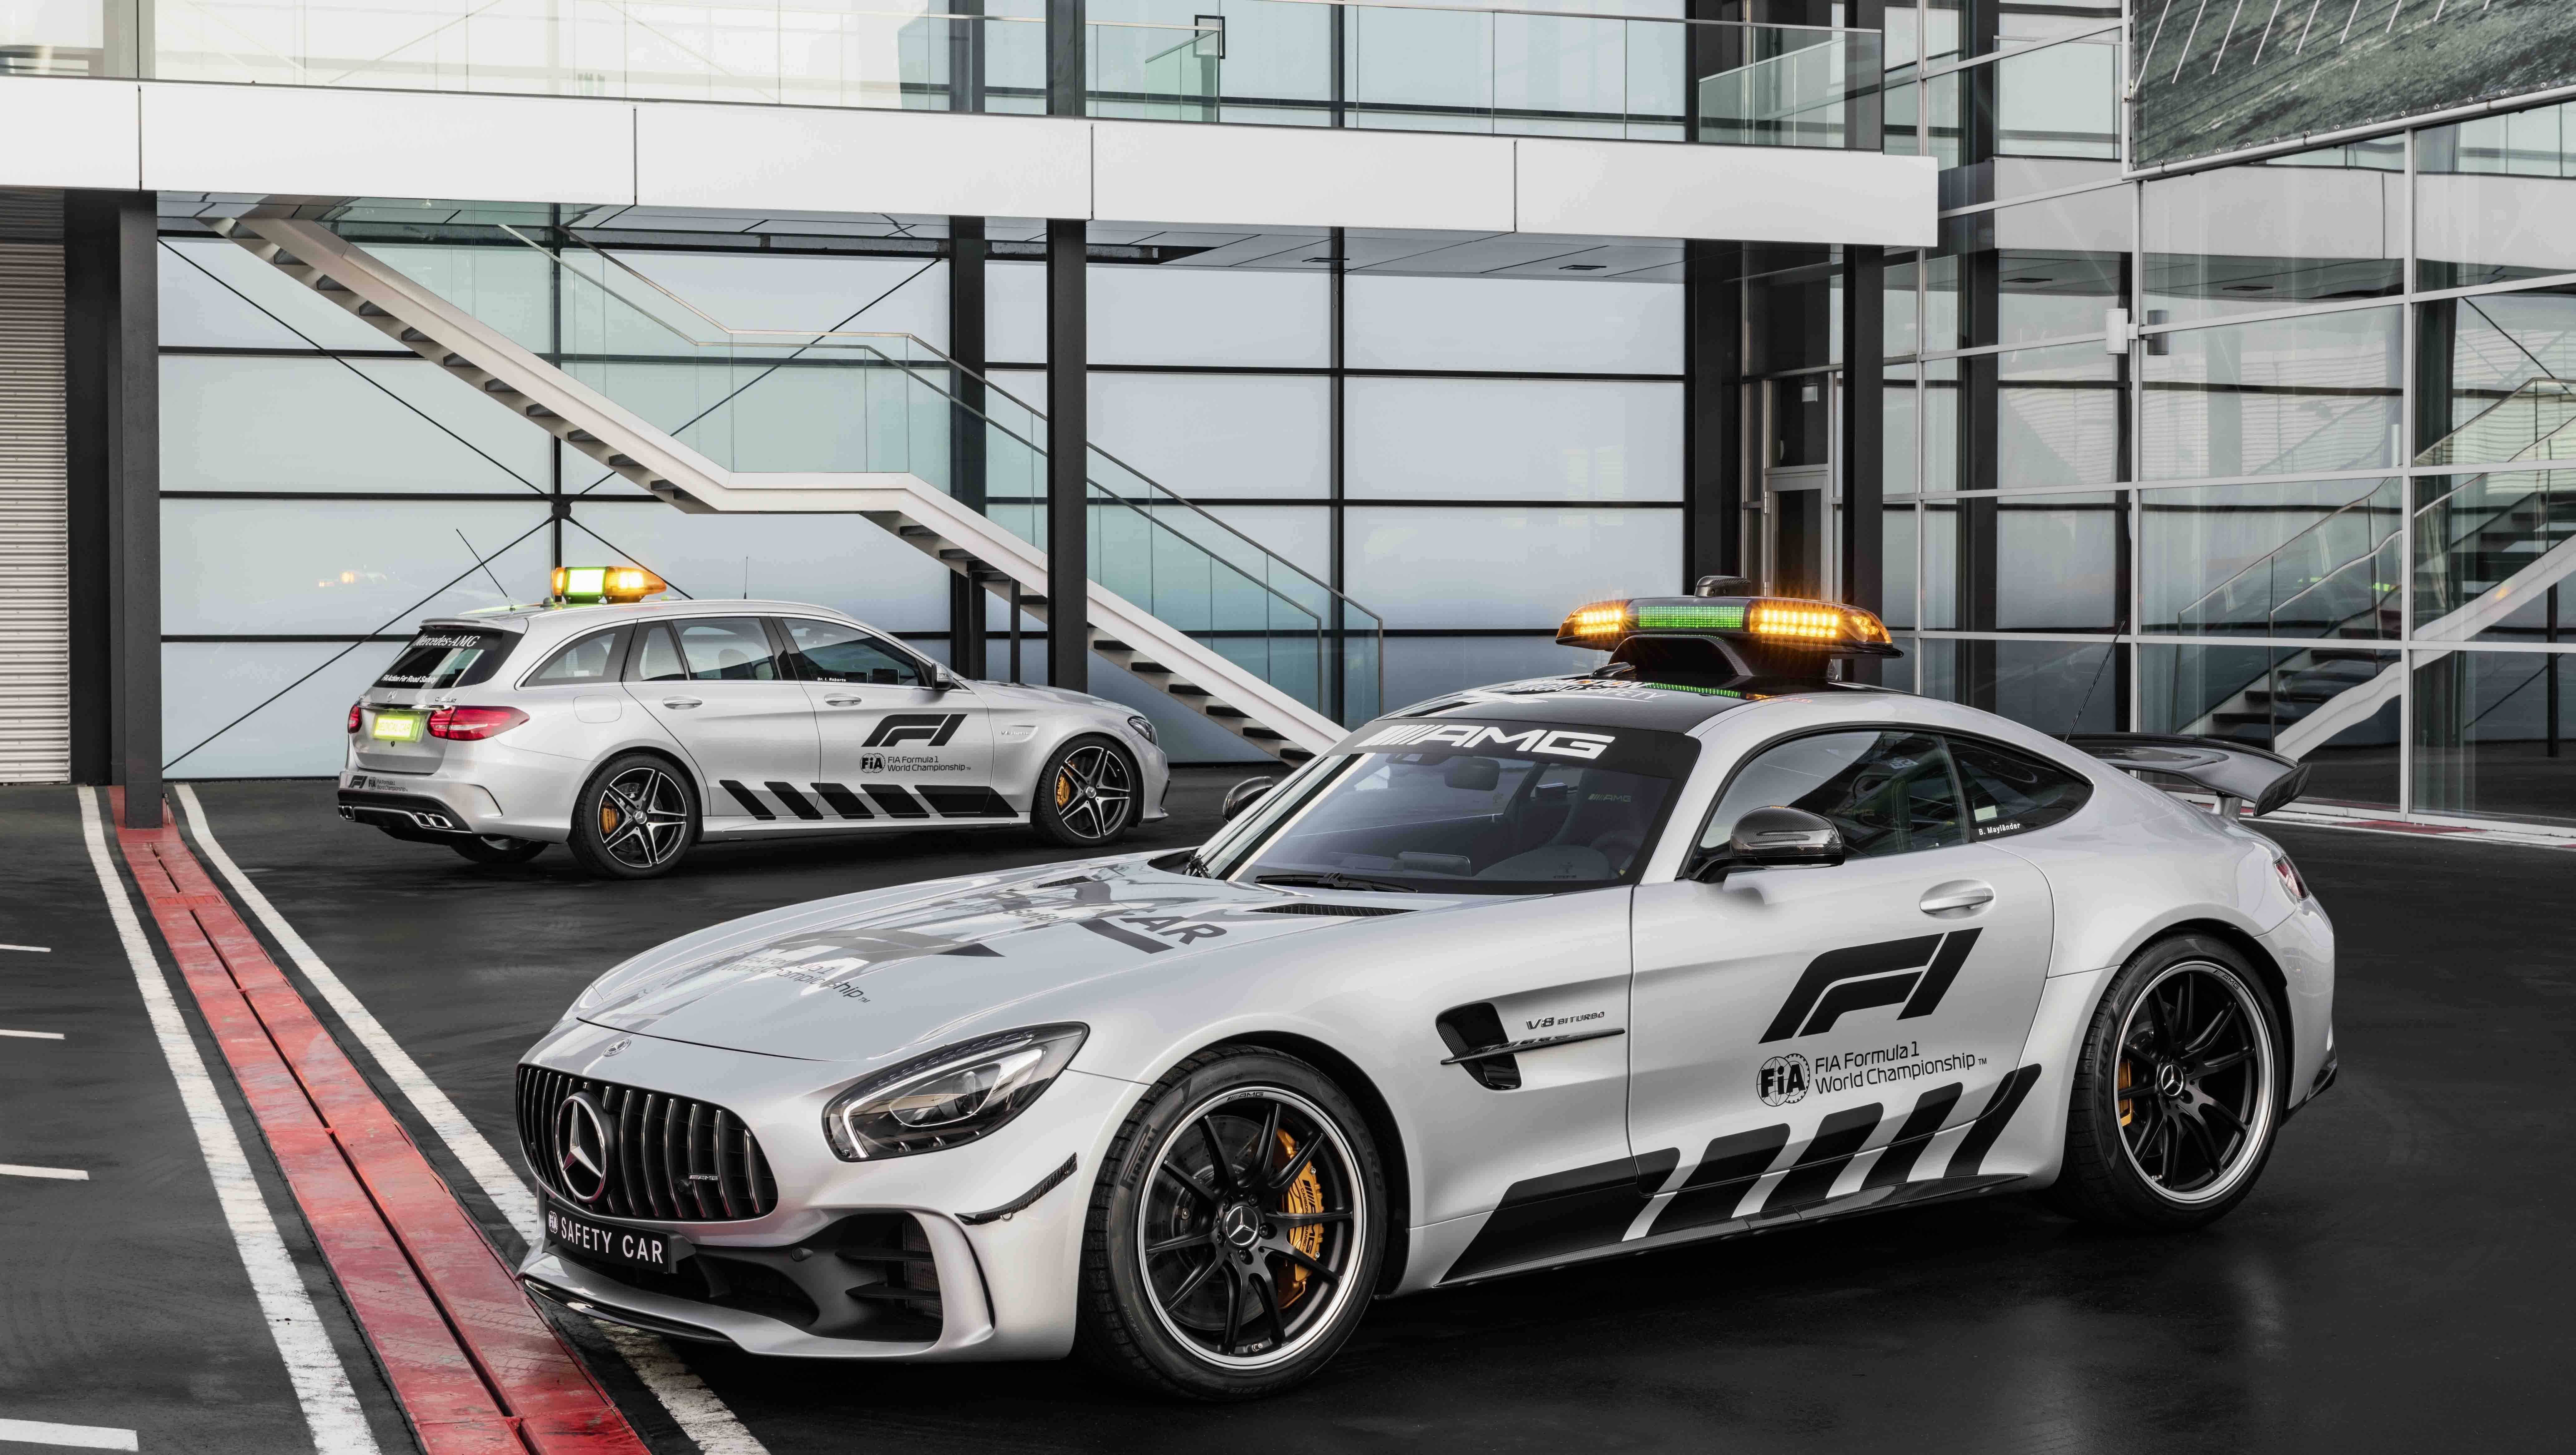 meet the most powerful formula 1 safety car ever the mercedes amg gt r overdrive. Black Bedroom Furniture Sets. Home Design Ideas